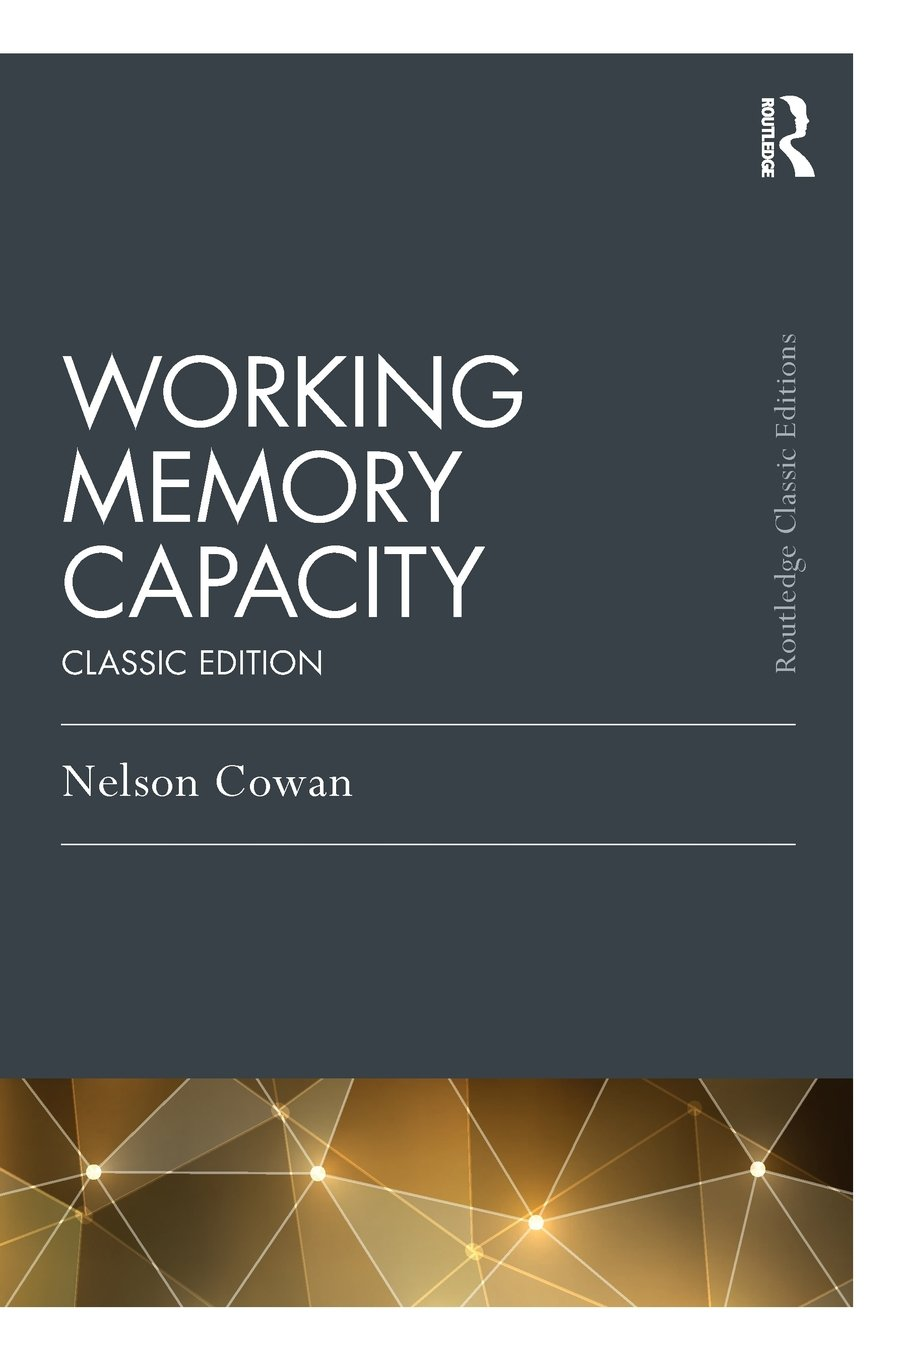 Working Memory Capacity: Classic Edition (Psychology Press & Routledge Classic Editions)